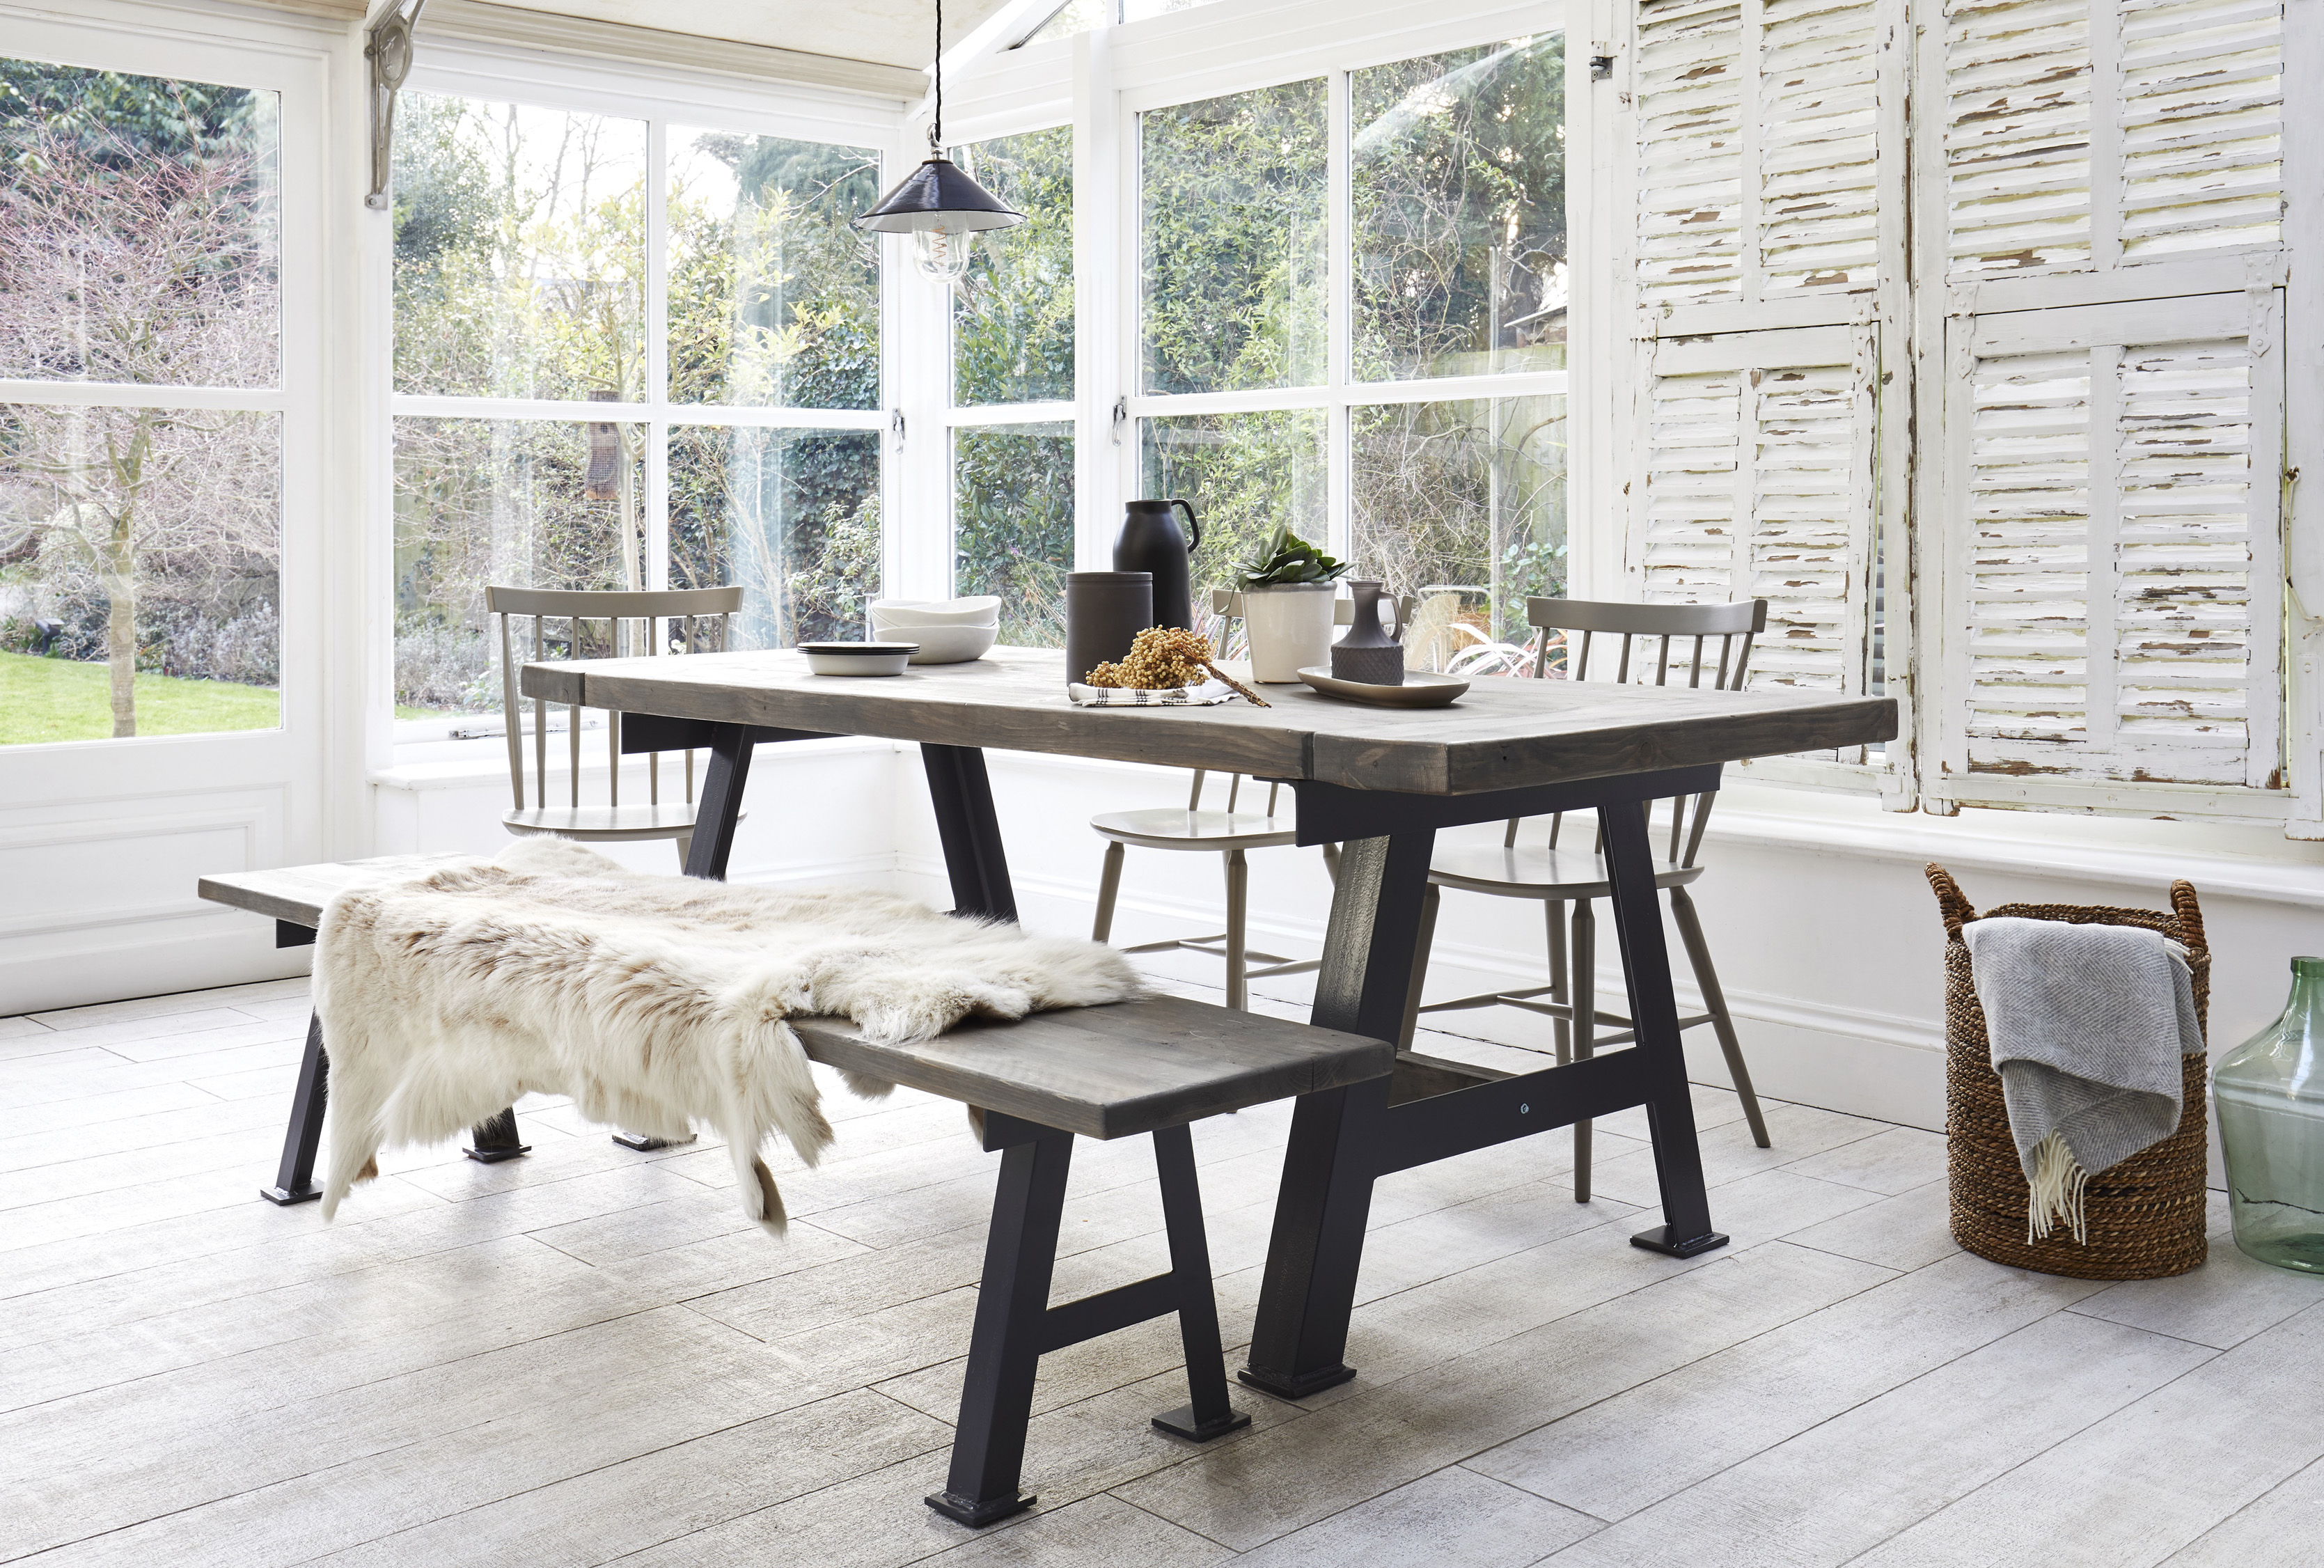 A-Game Reclaimed Dining Table from £1,690.00–£2,010.00; A-Game Reclaimed Bench, from£330.00–£390.00, Rust Collections (Rust Collections/PA)